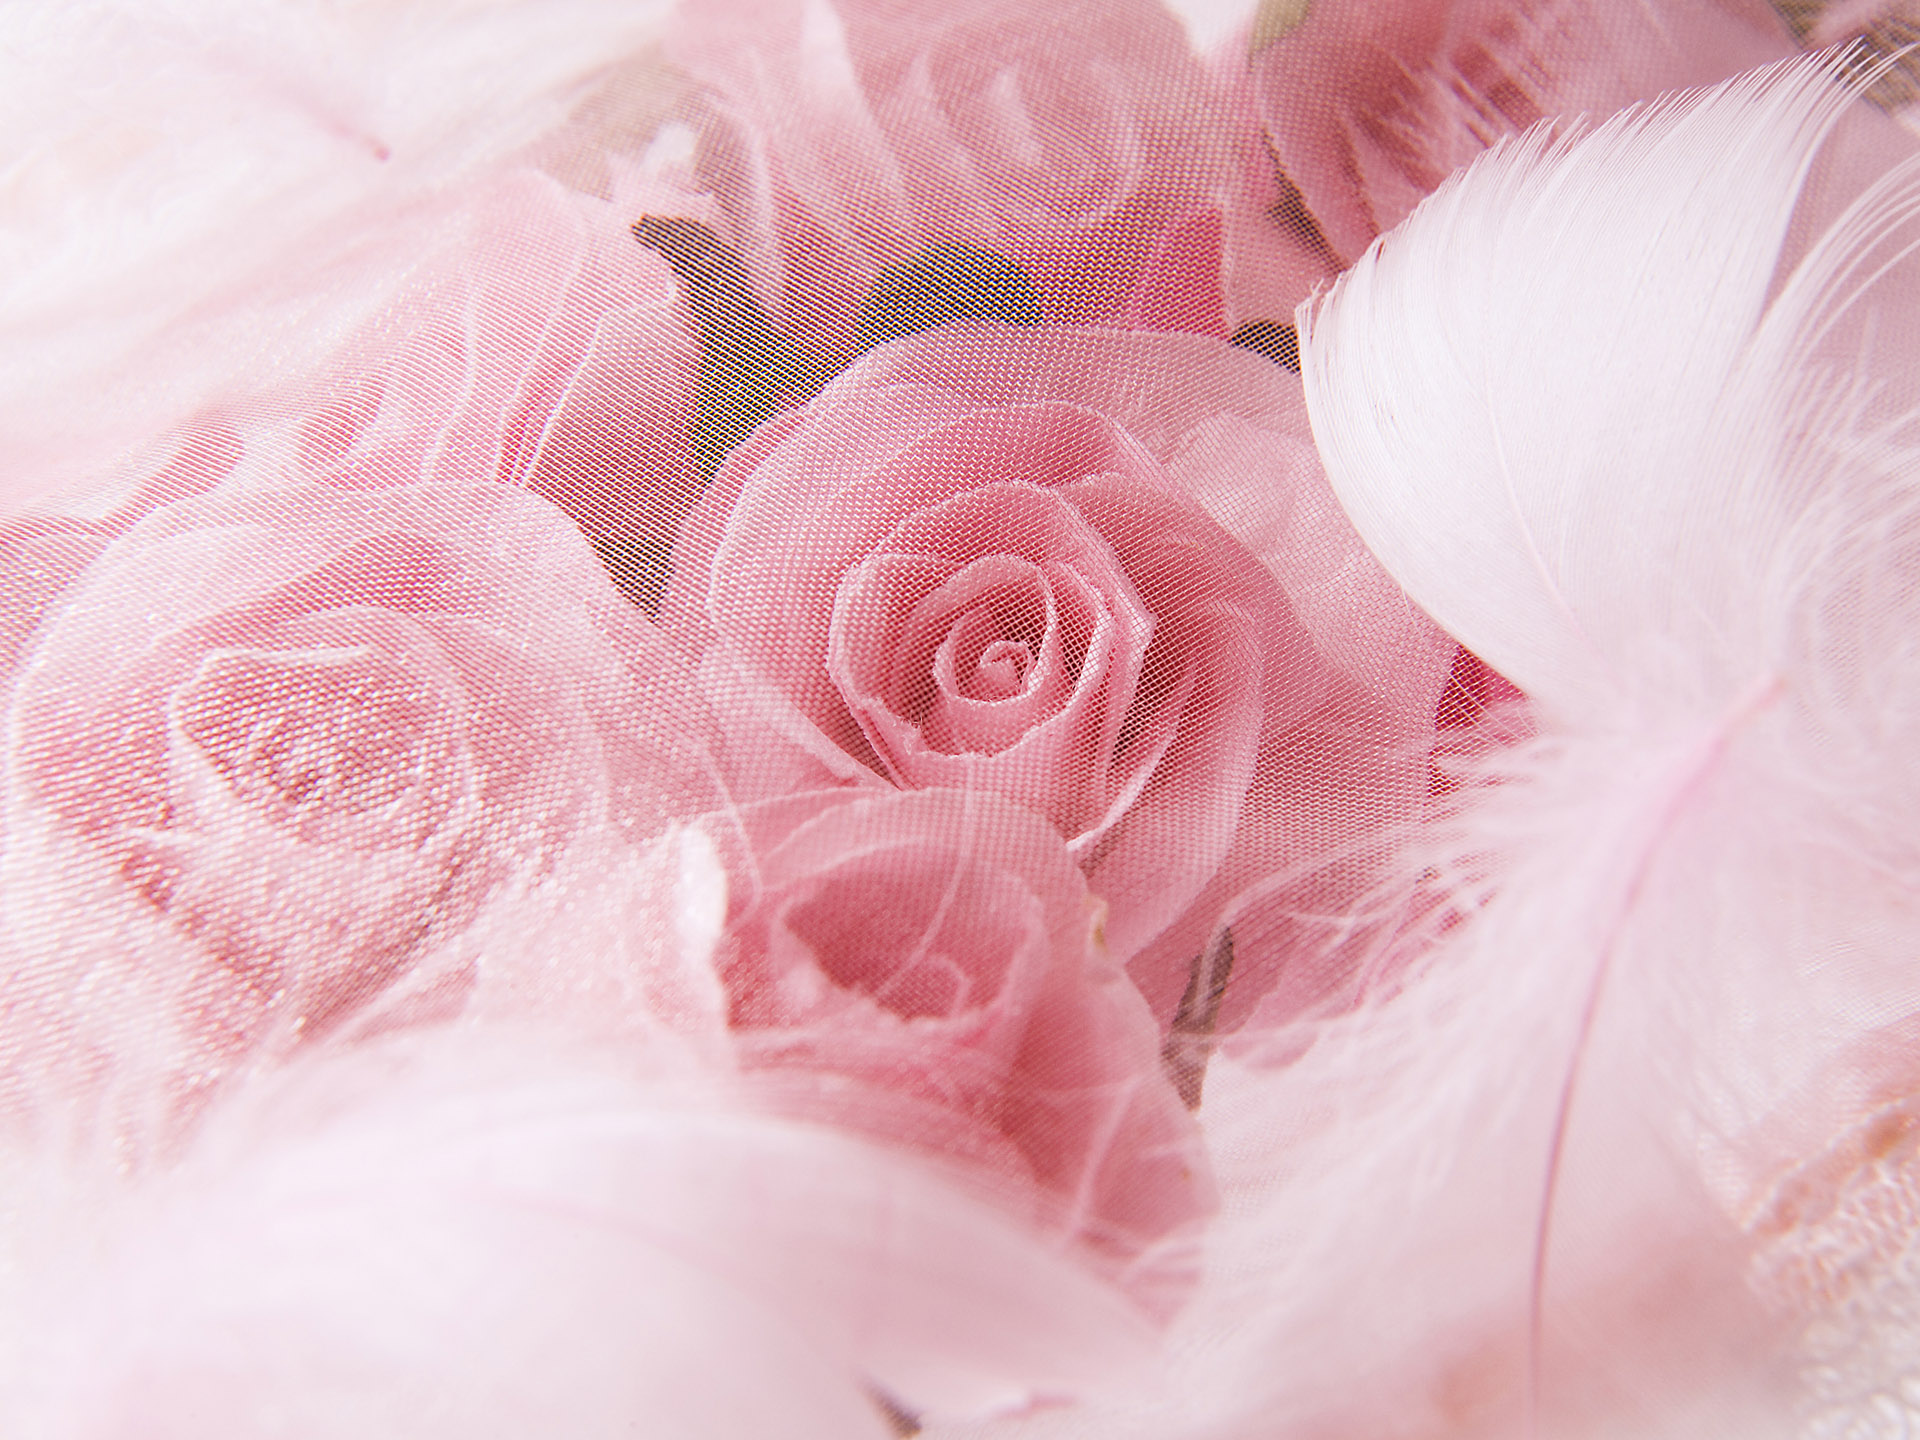 click to free download the wallpaper--Wedding Photography, Pink Wedding Flowers, Cozy and Romantic Scene 1920X1440 free wallpaper download